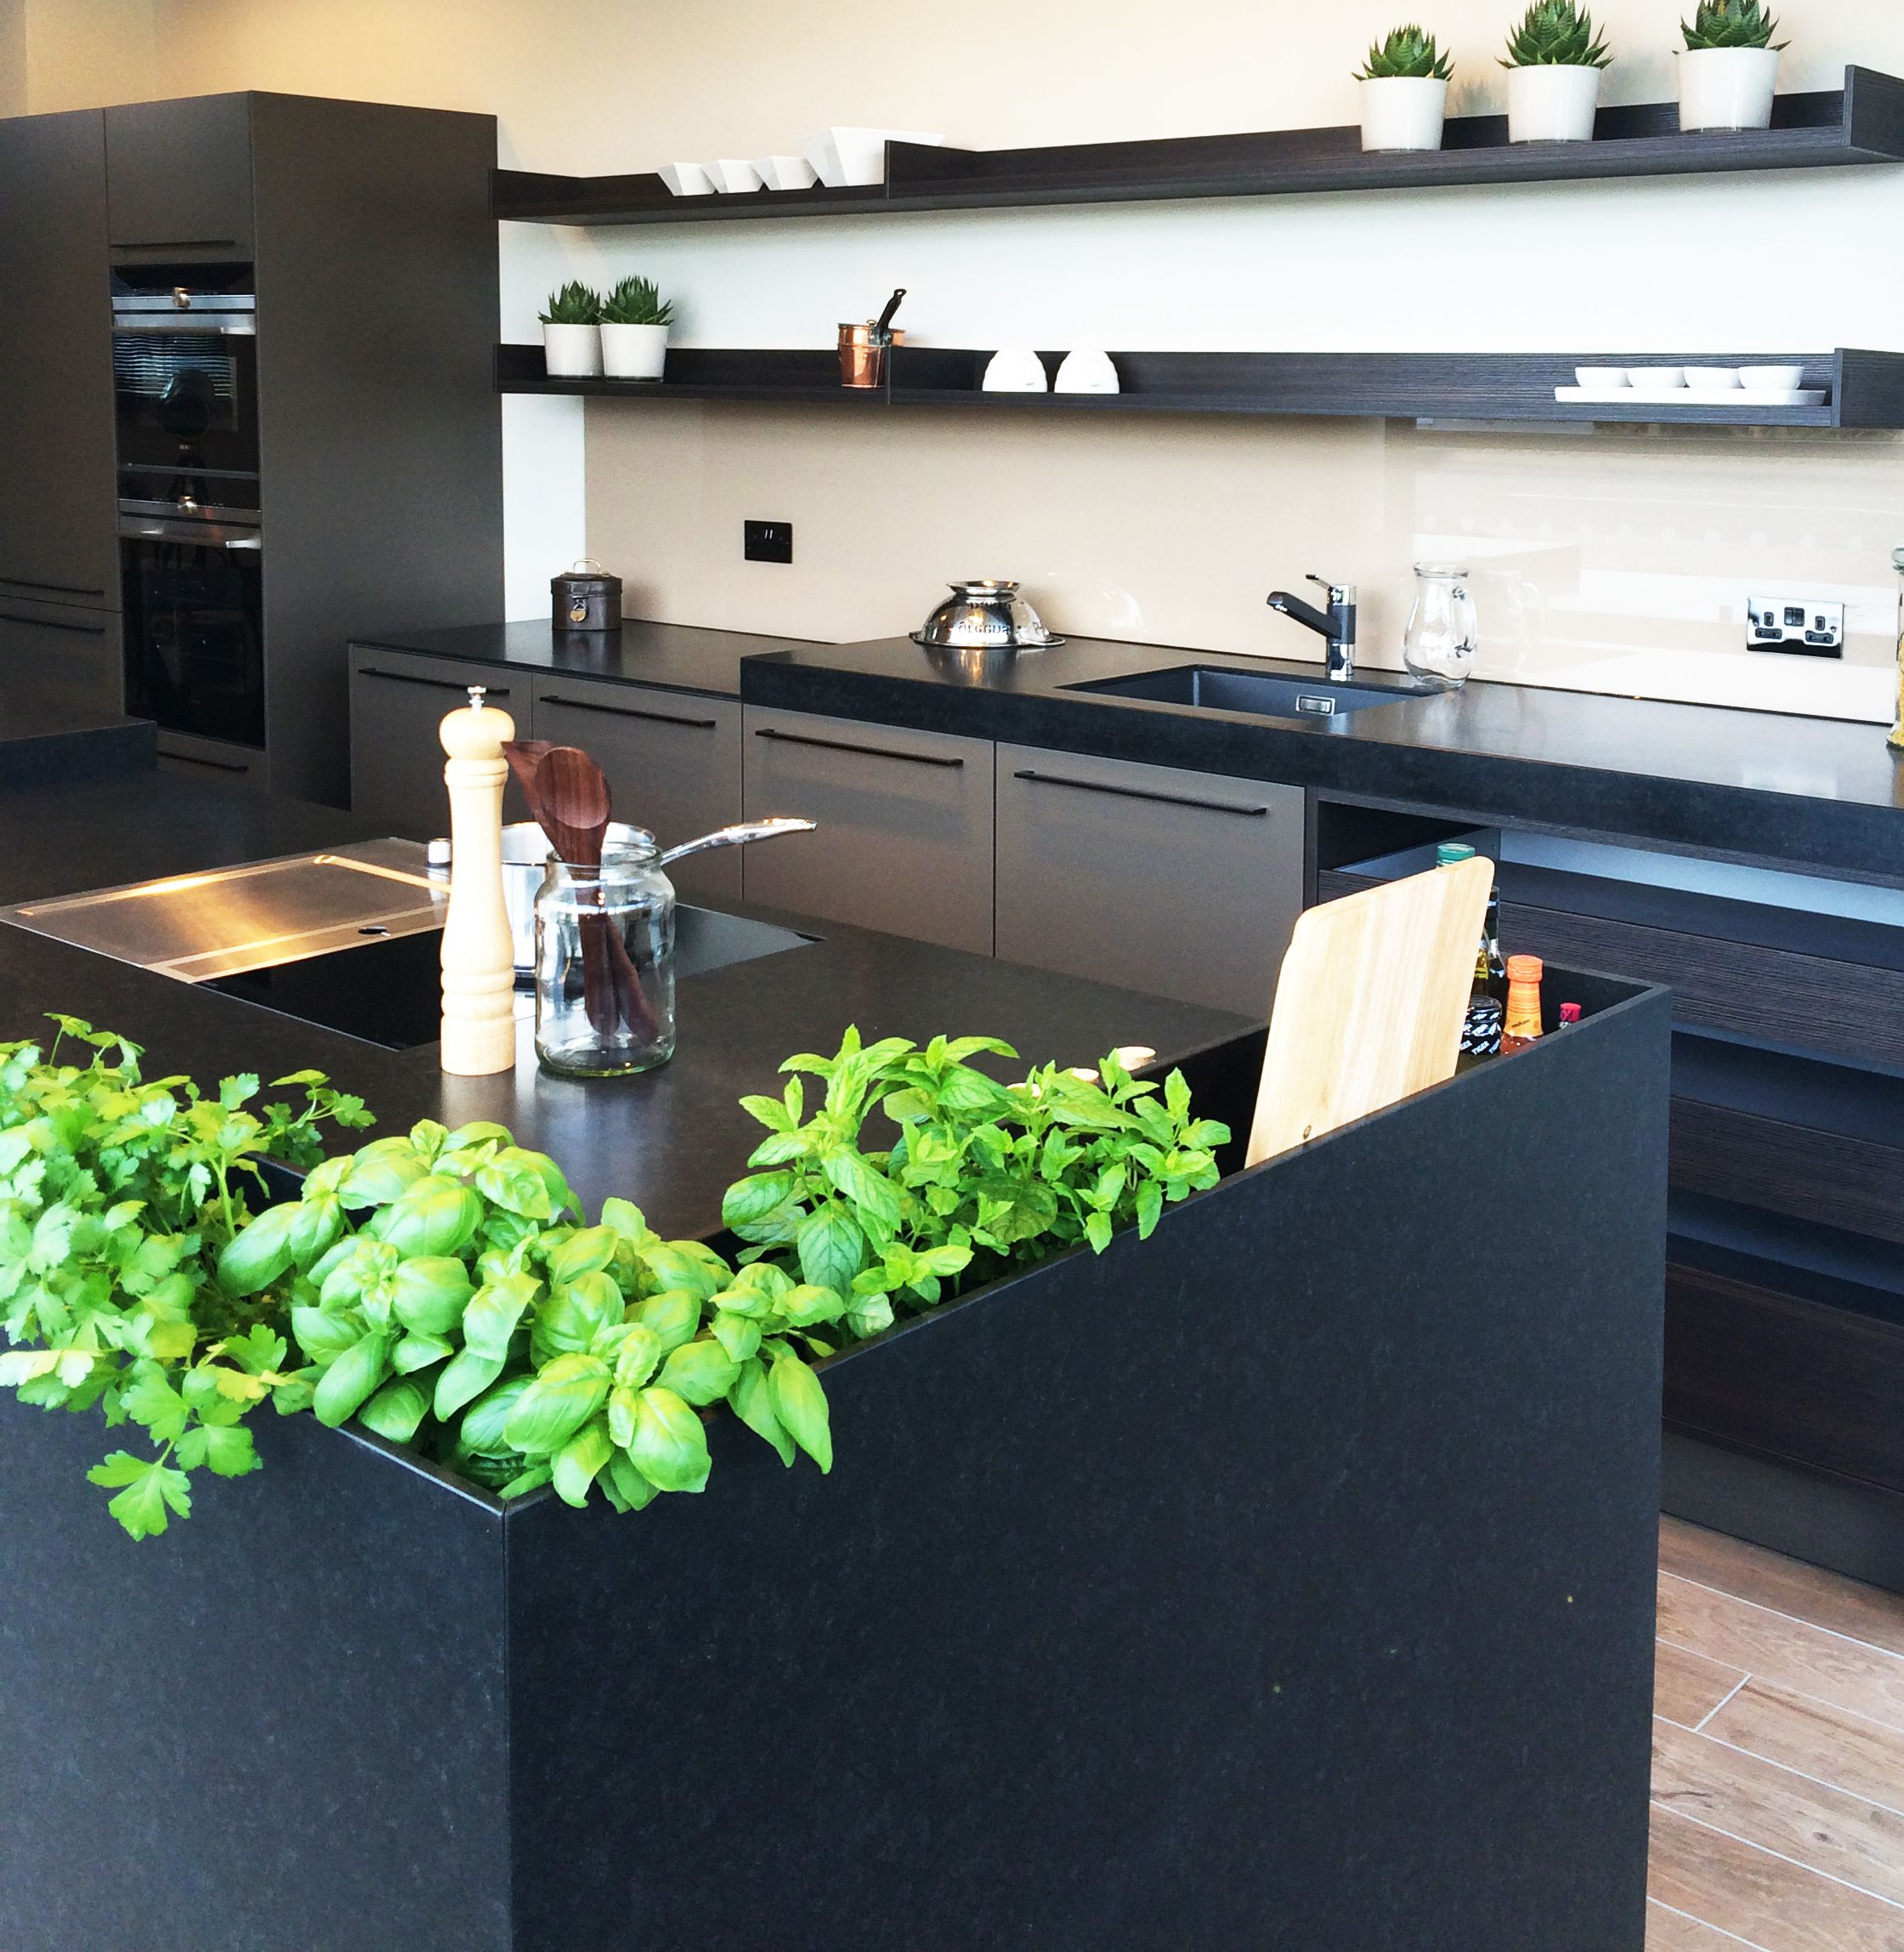 Our very own living herbs growing in the display SieMatic HD8